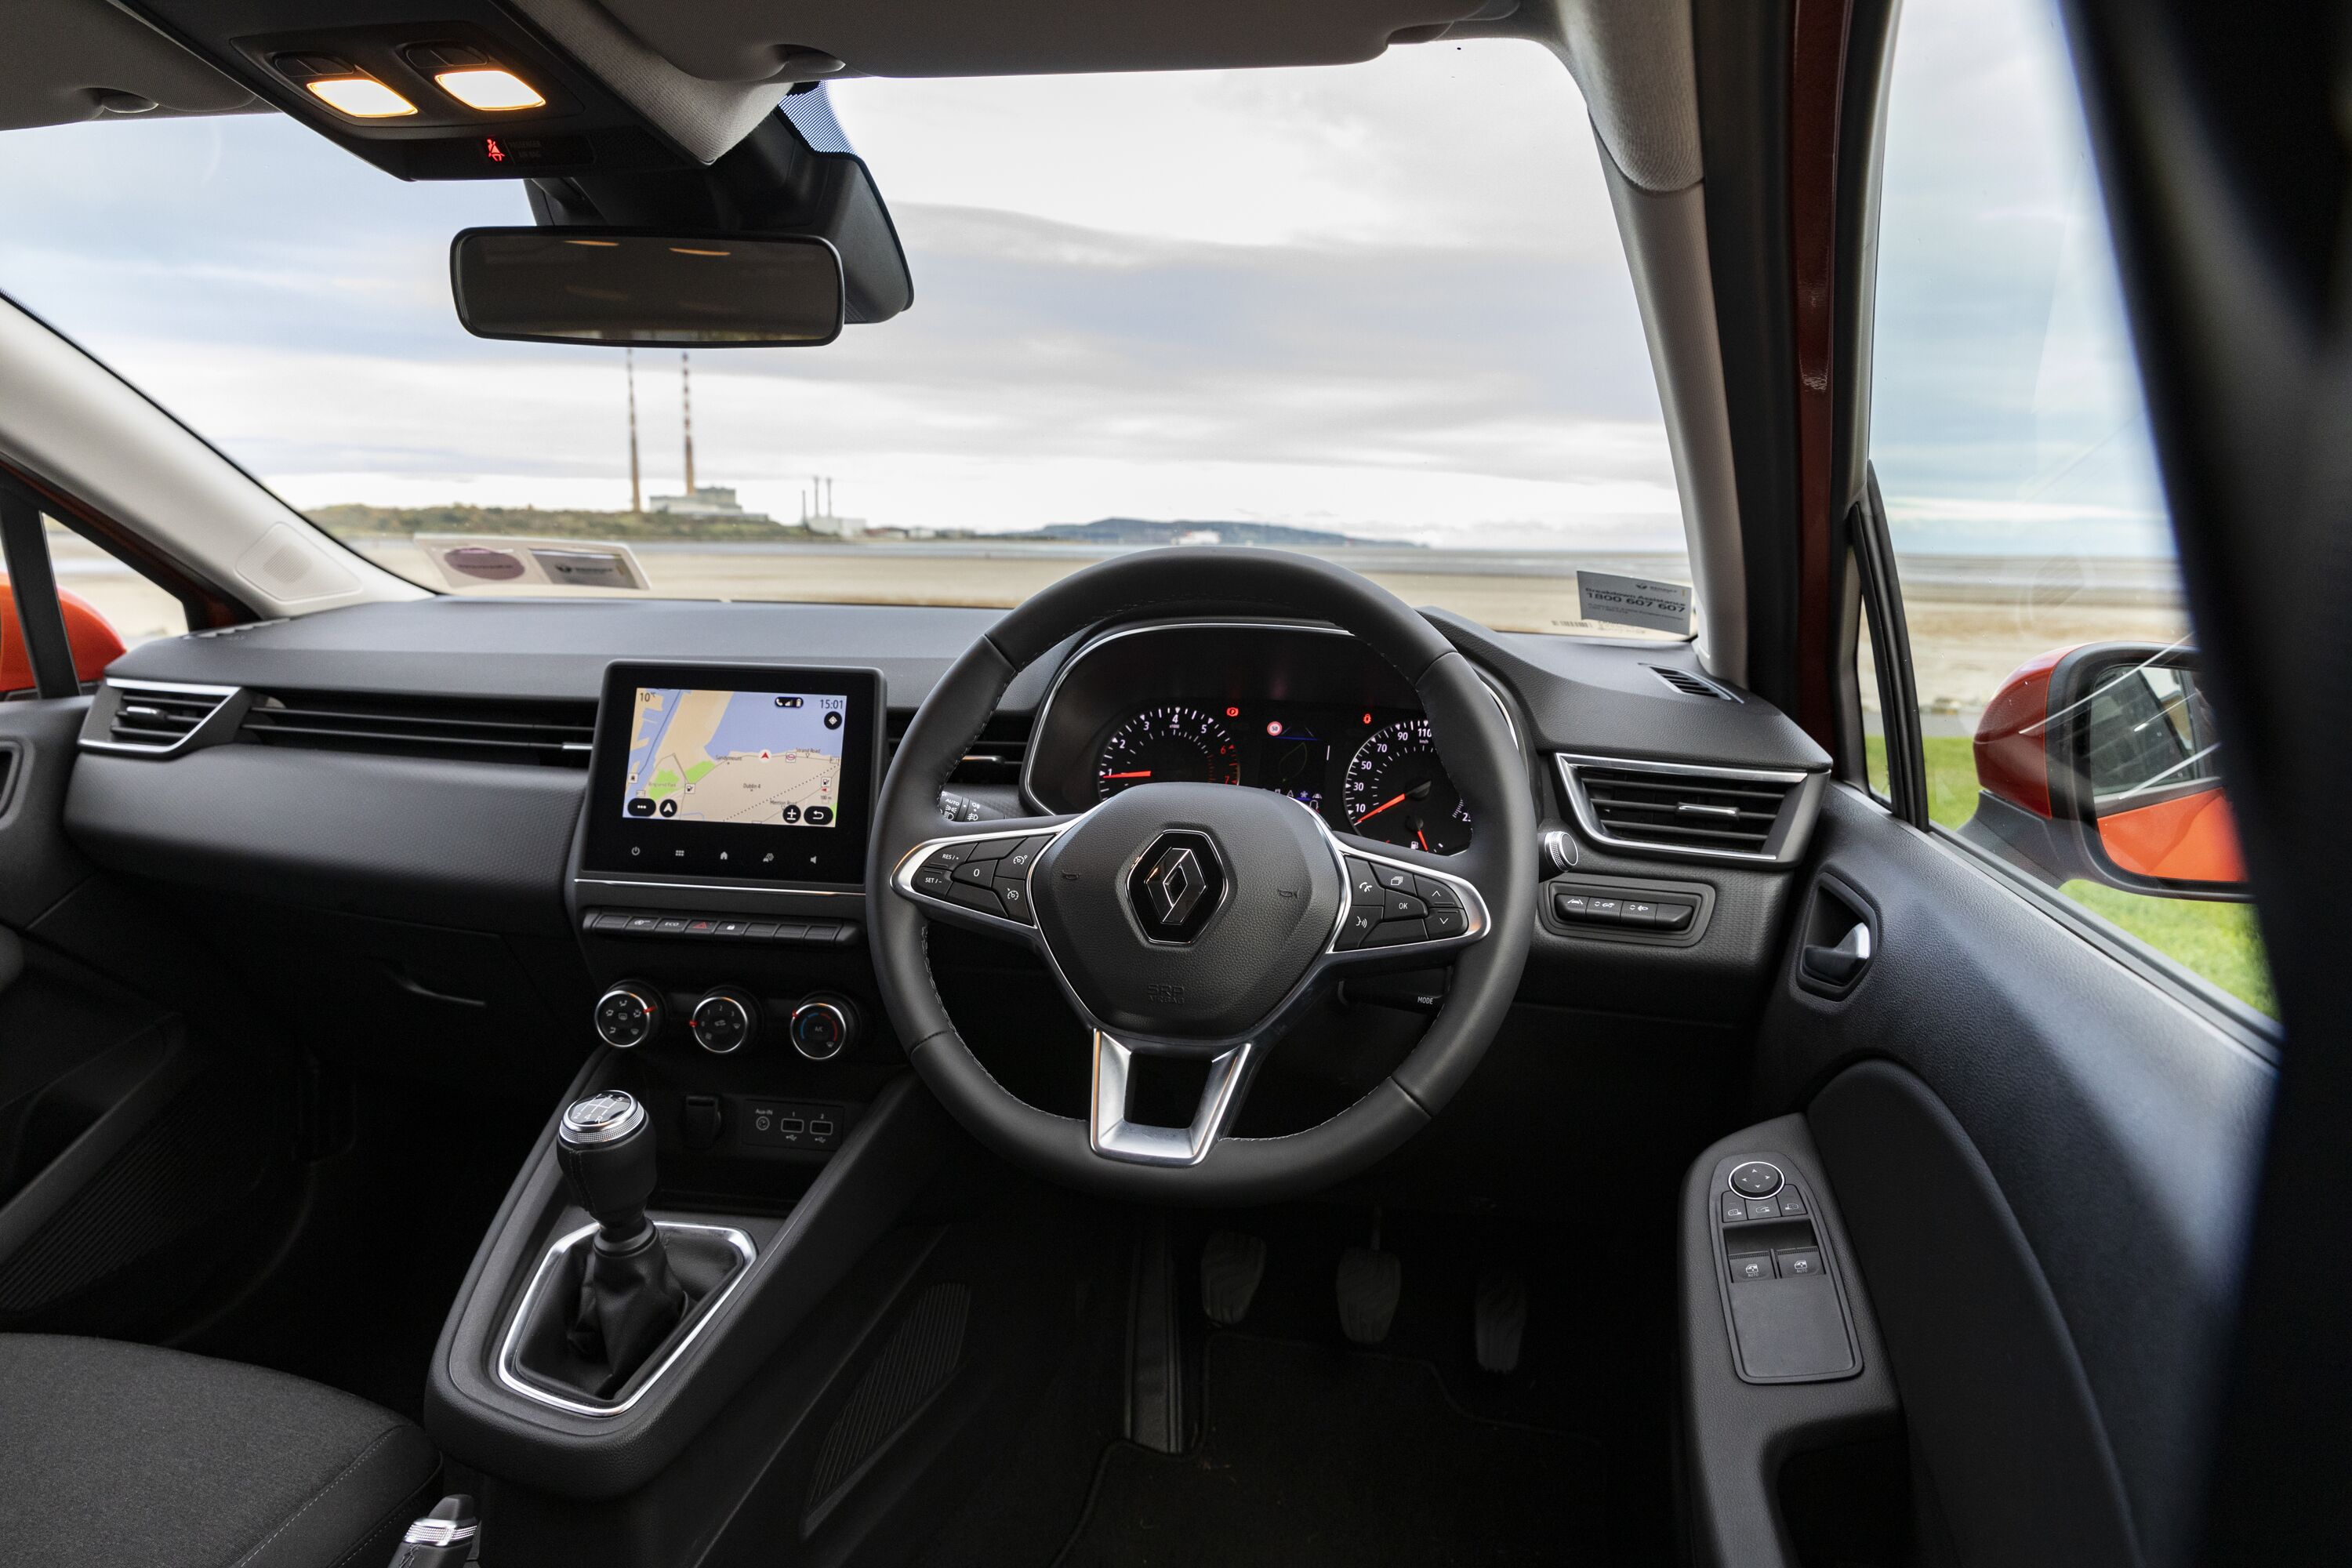 All New Renault Clio Launches In Ireland Check It Out In Joe Mallon Motors Laois Today